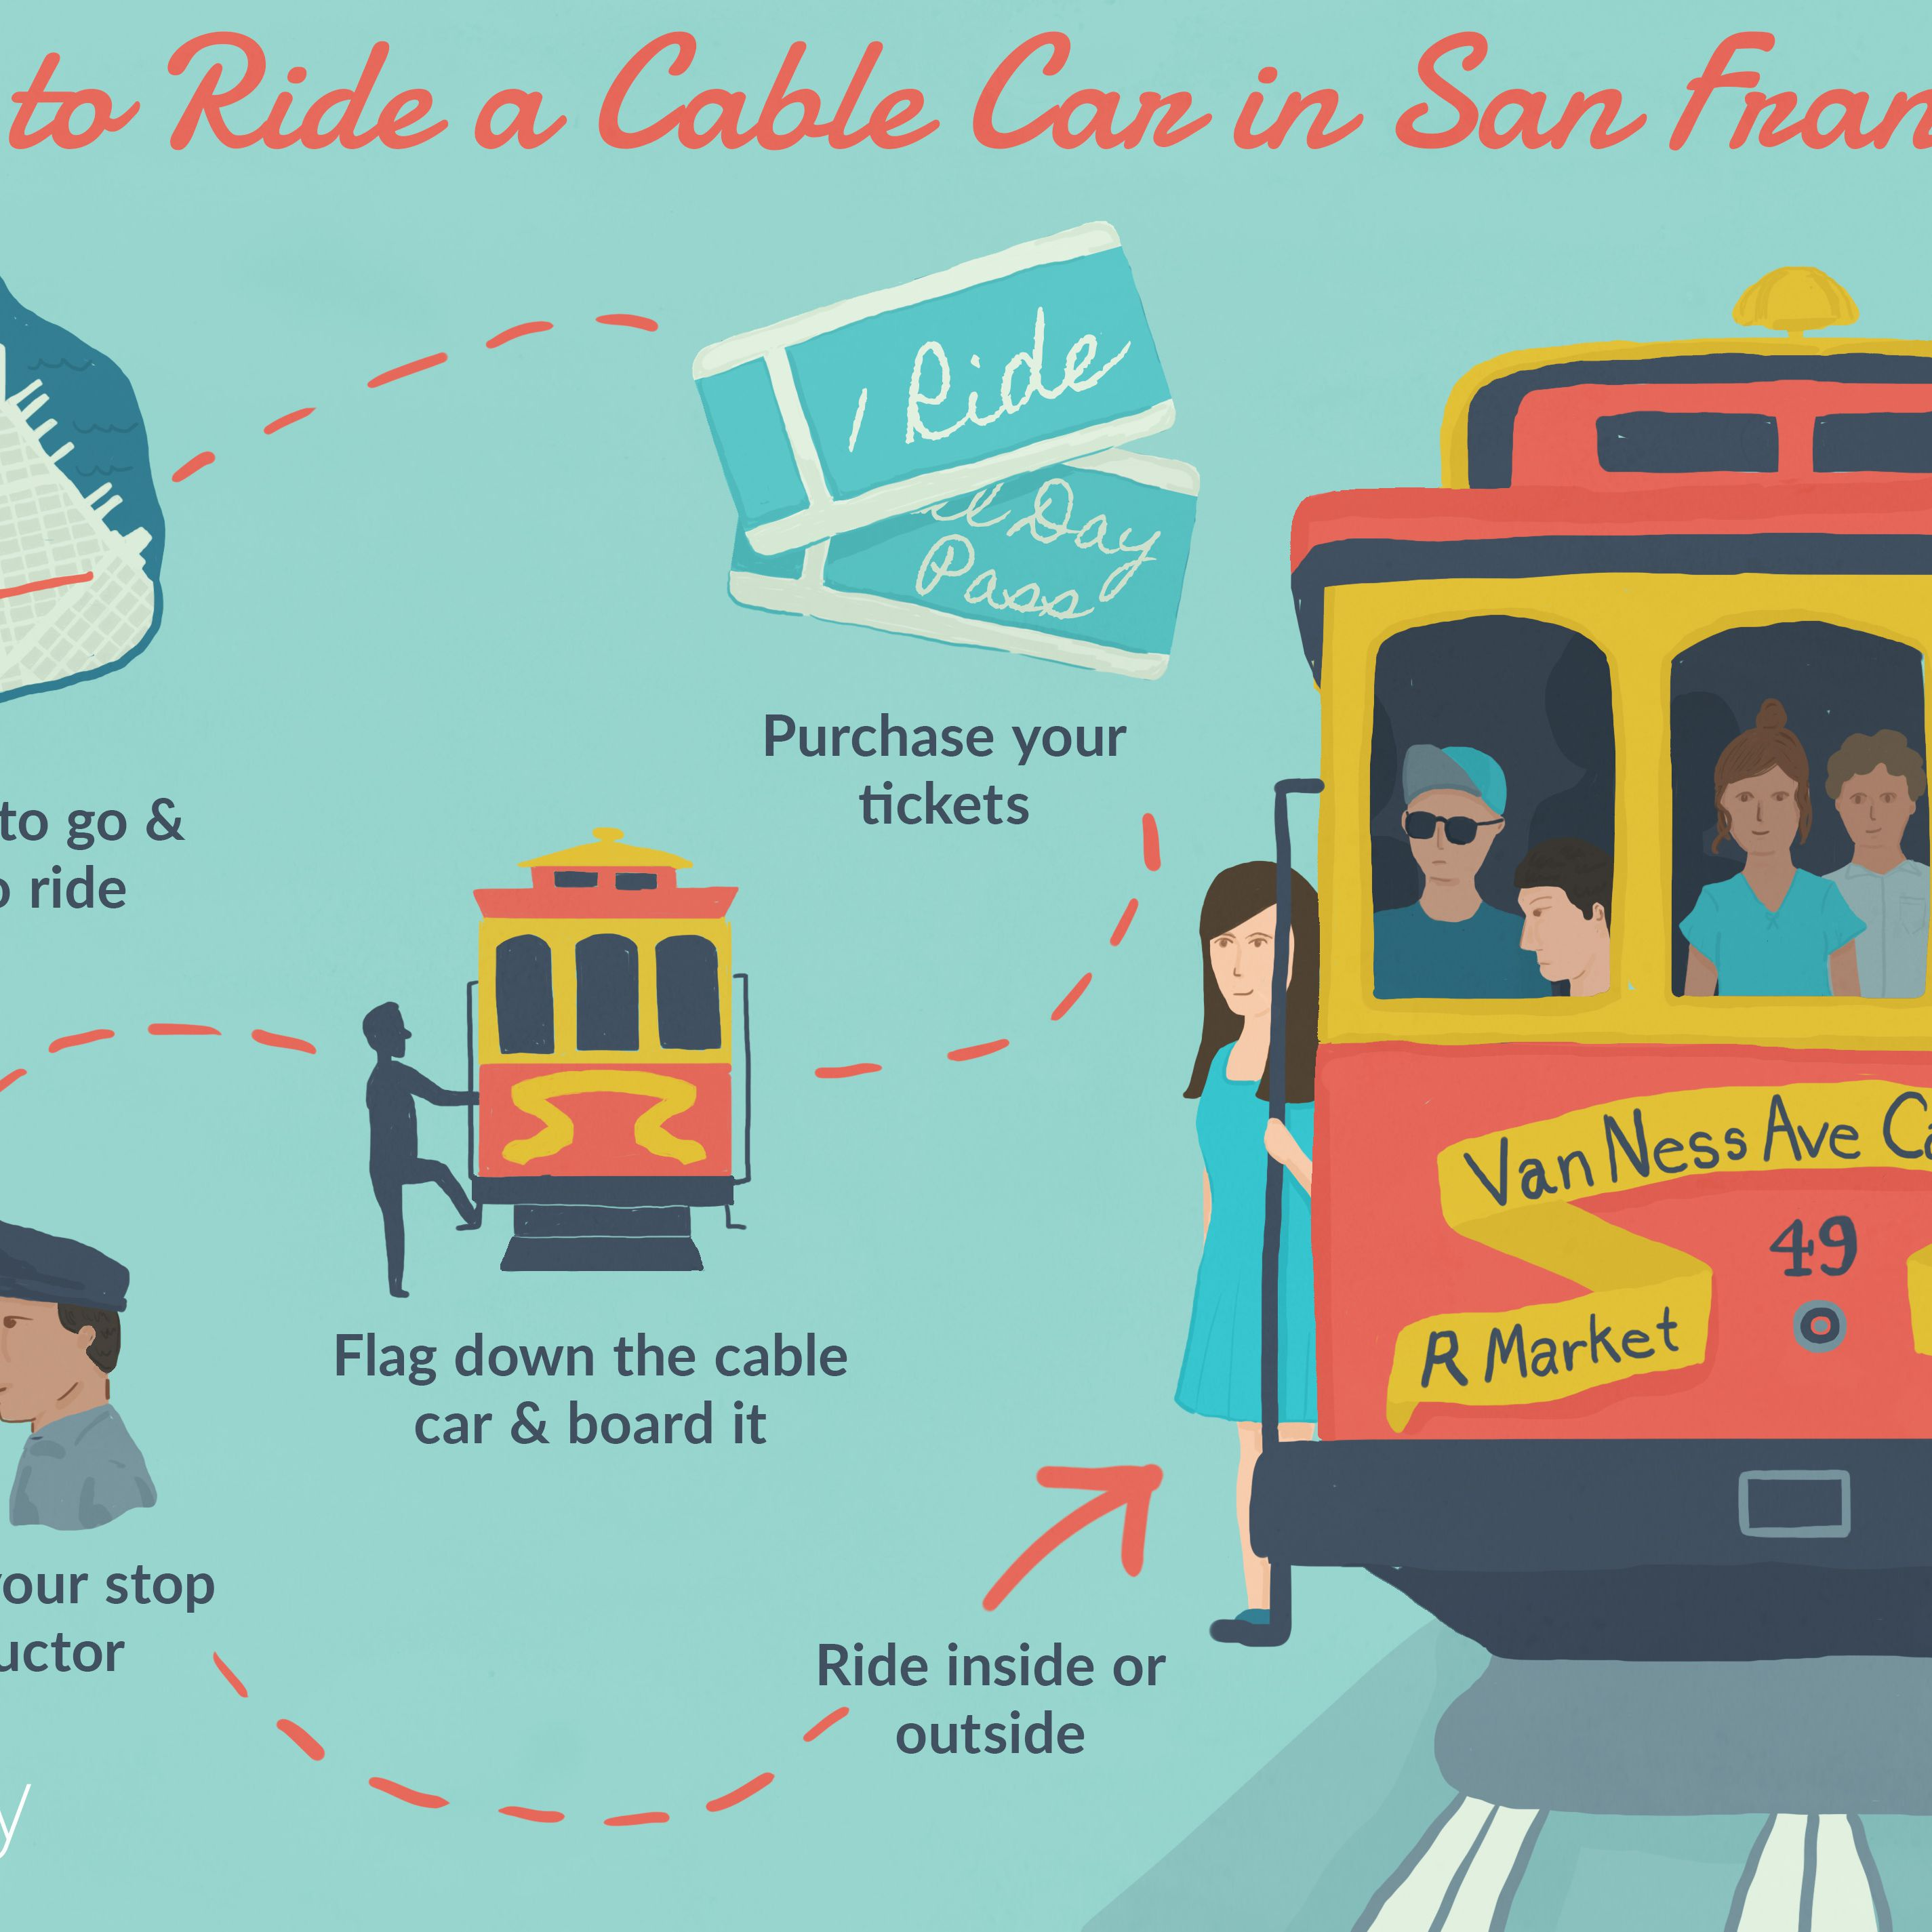 Ride a San Francisco Cable Car: What You Need to Know